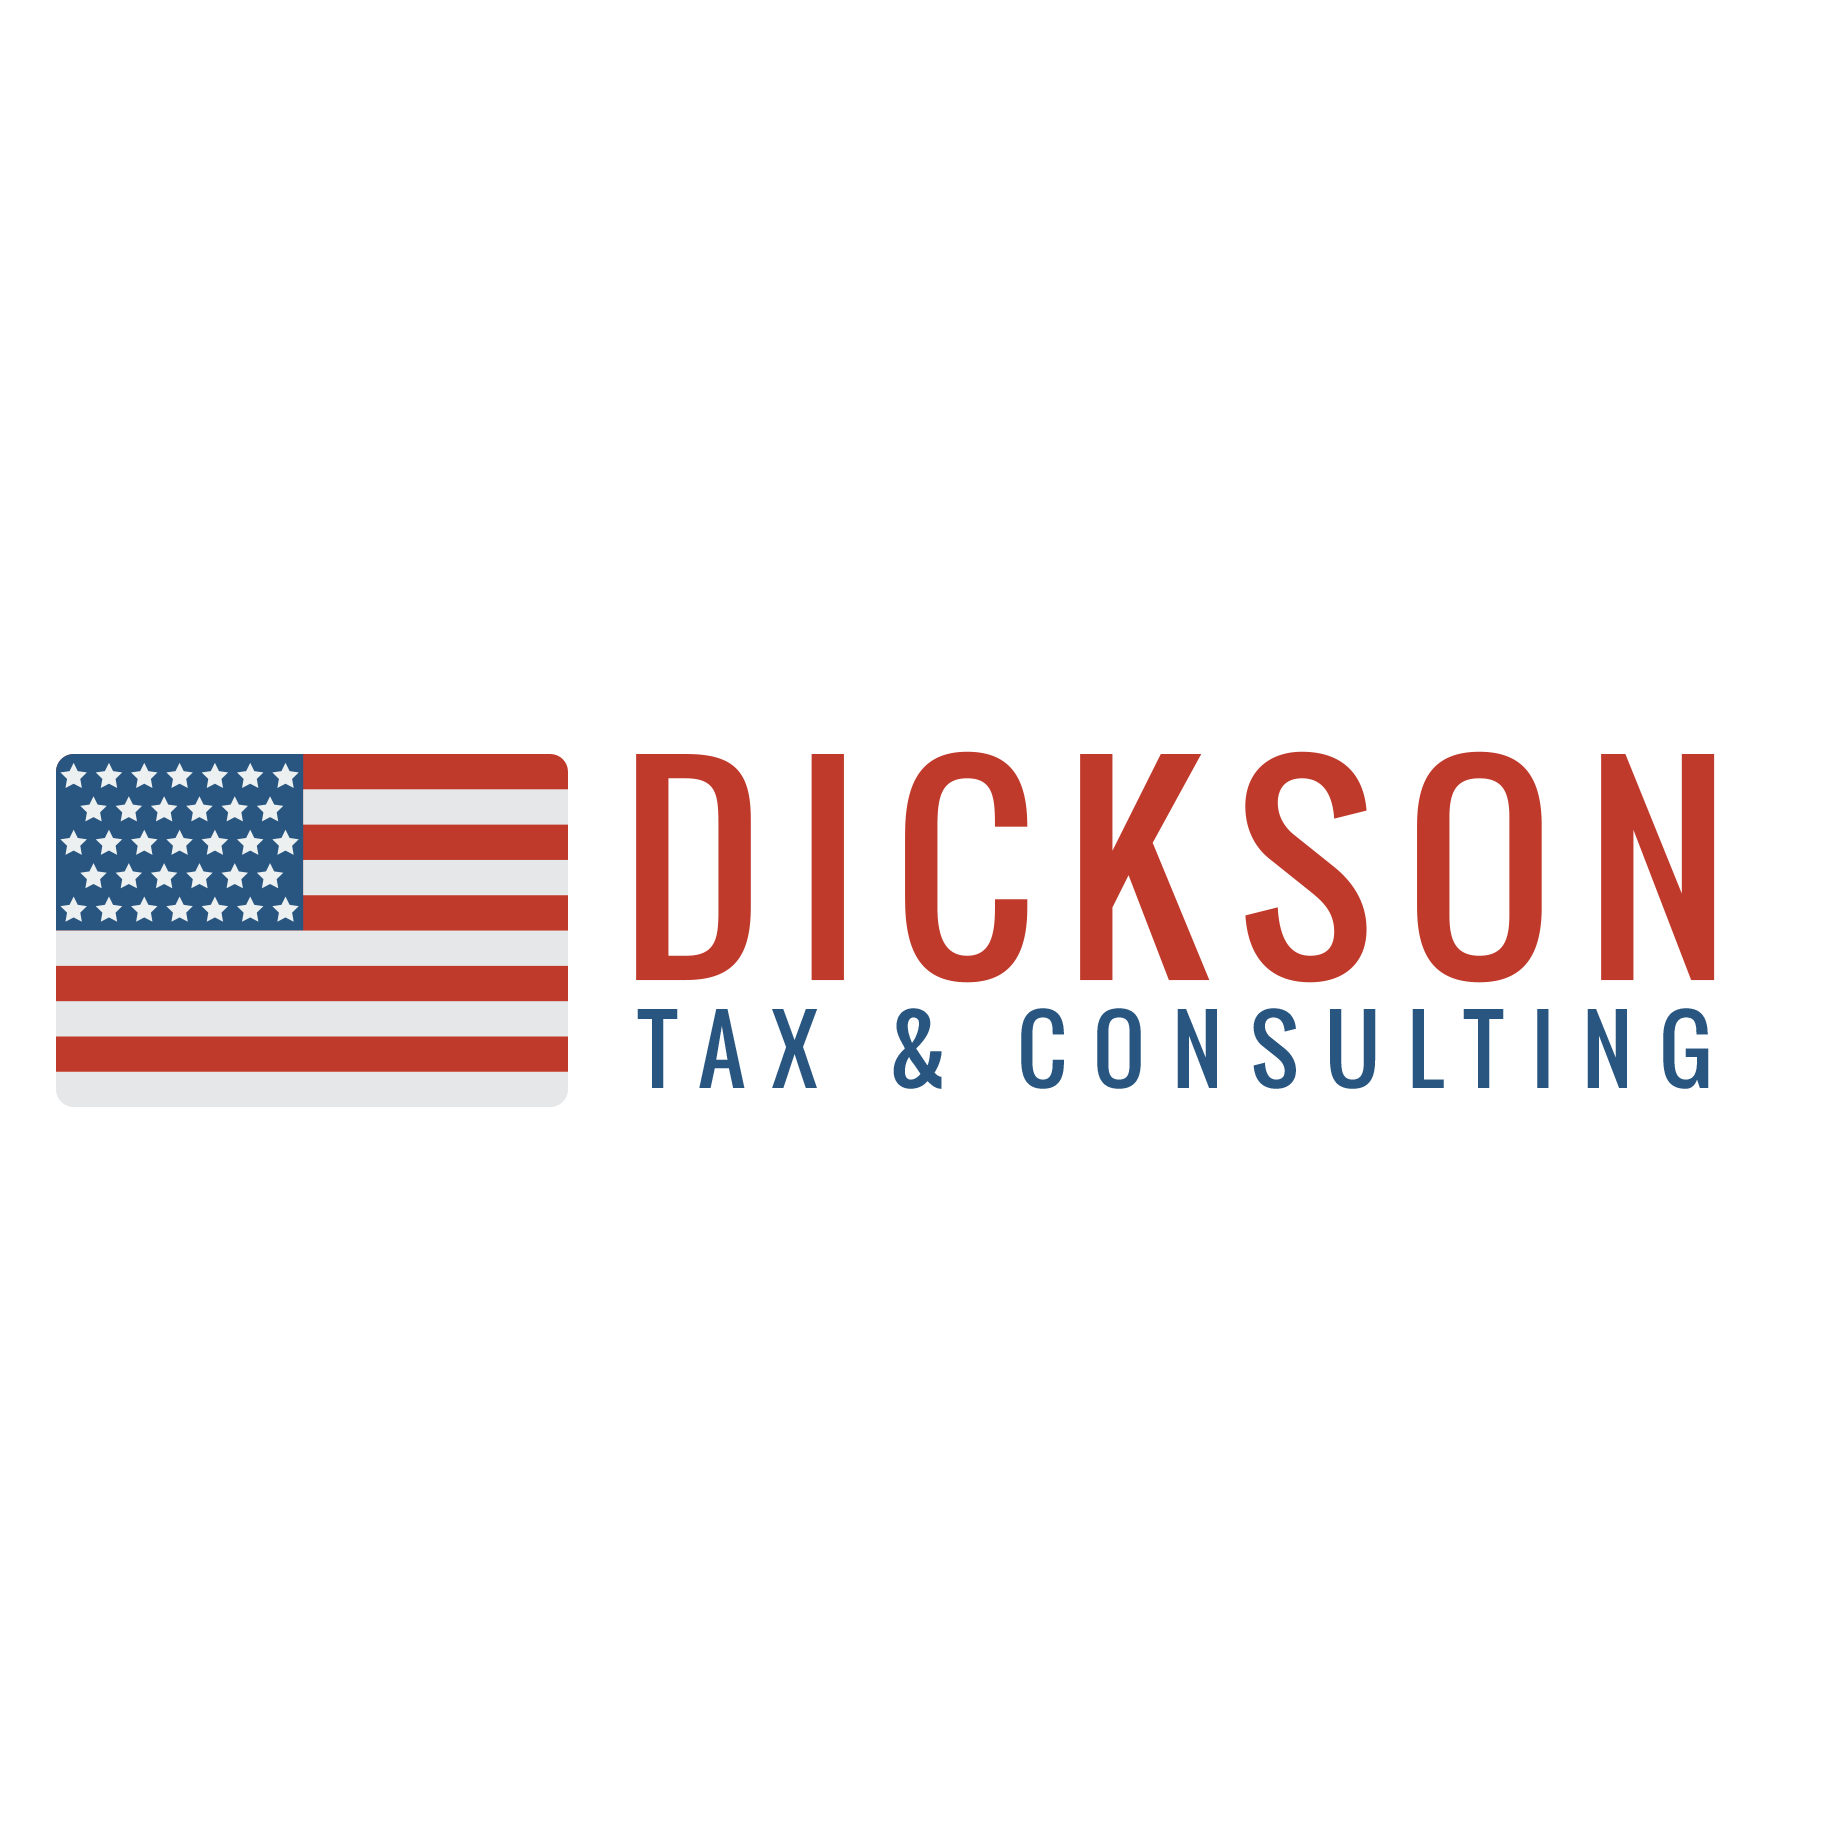 Dickson Tax & Consulting image 0